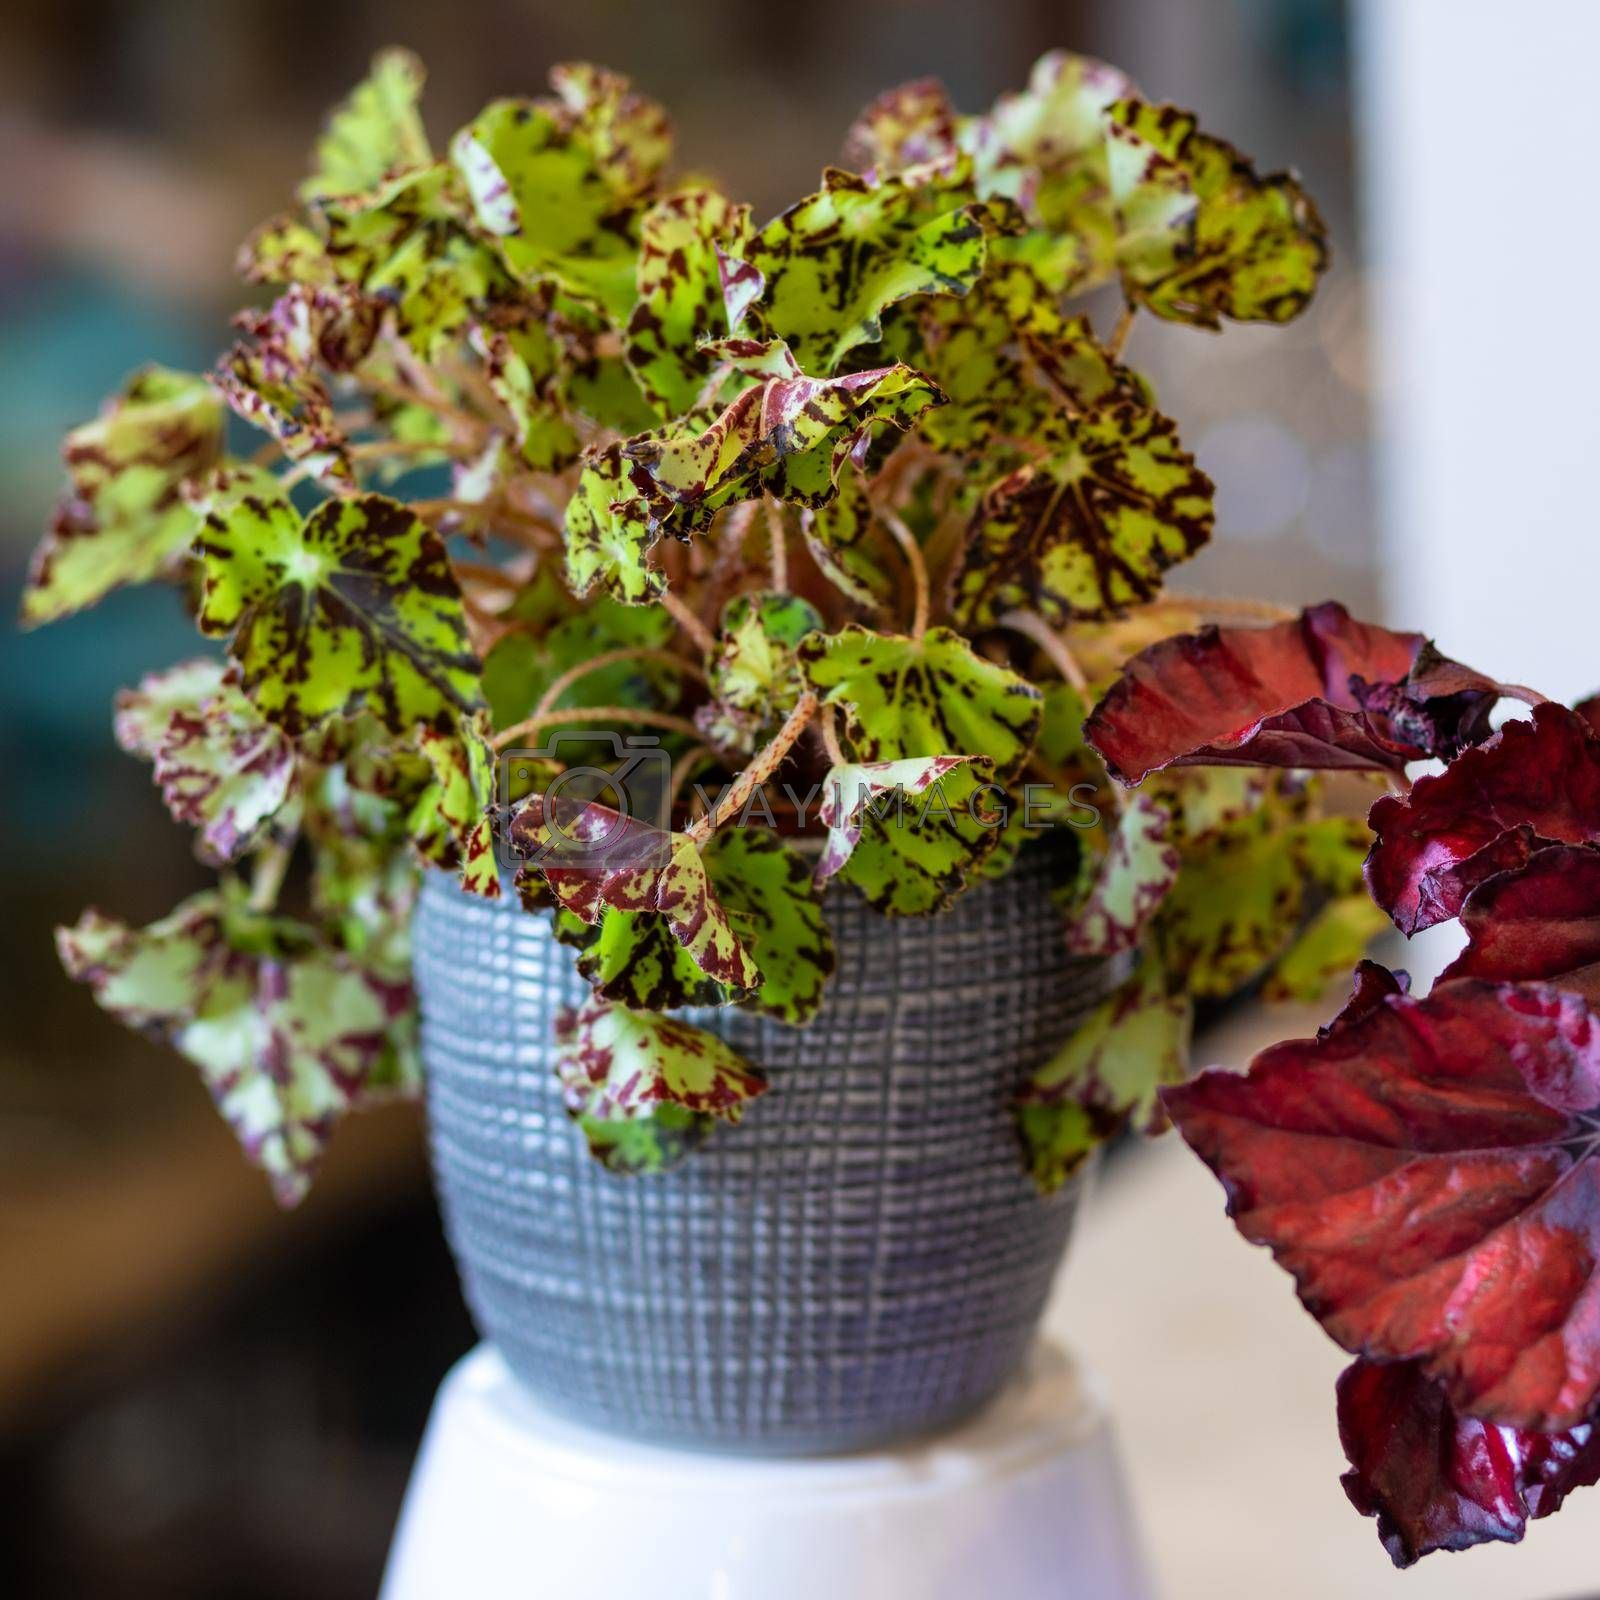 Painted-leaf begonia, Begonia rex in the silver pot